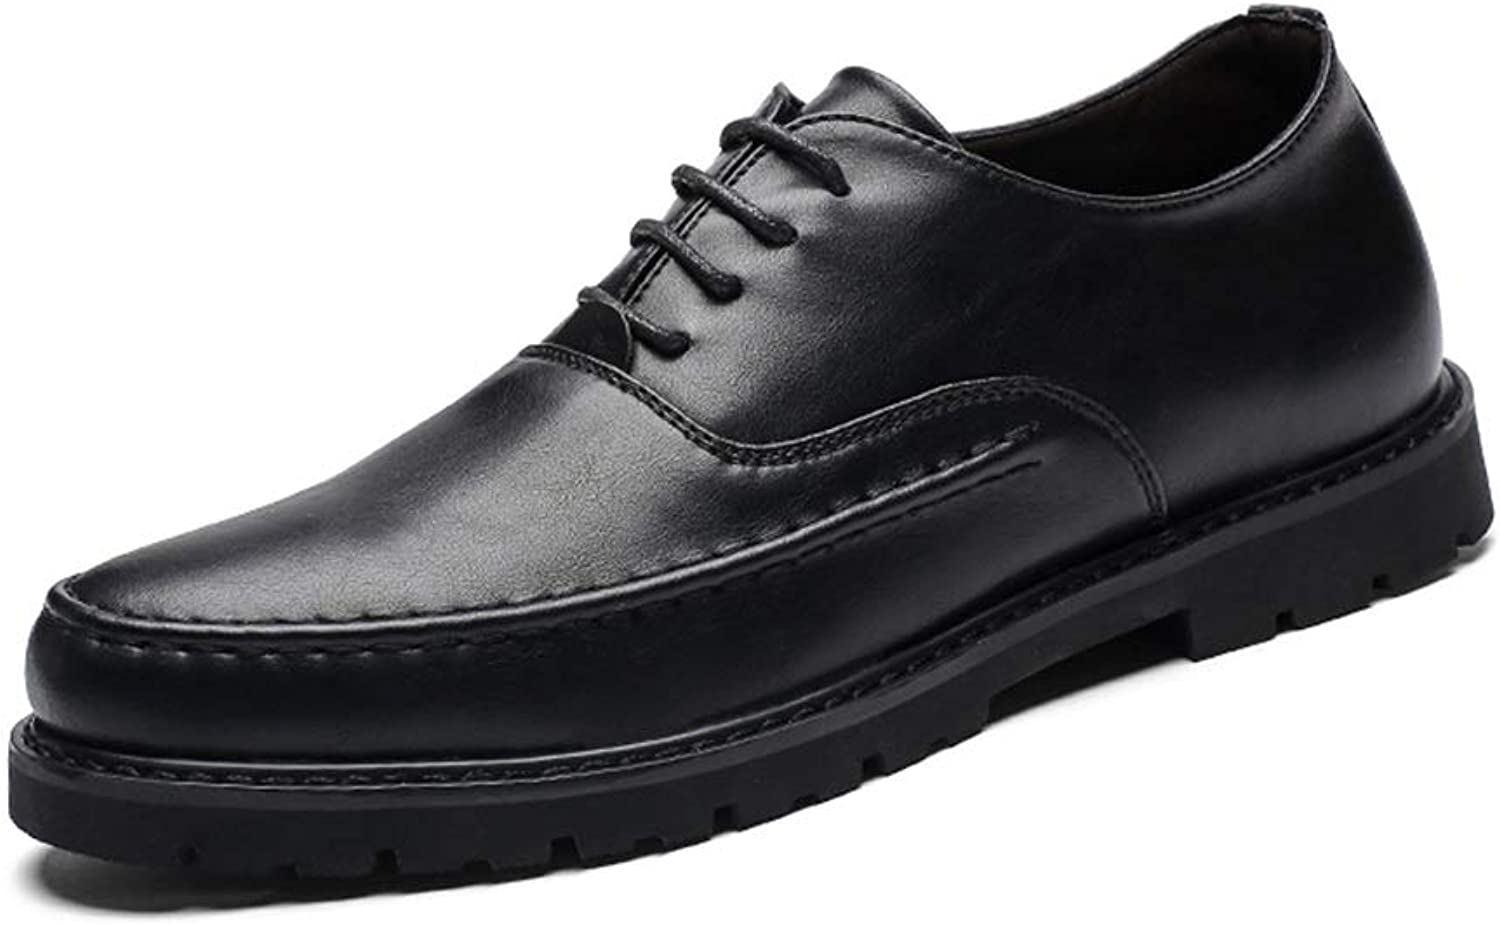 Ino Unassailable Antislip Business Oxford for Men Stately Dress shoes Lace up Microfiber Leather Outdoor Wedding